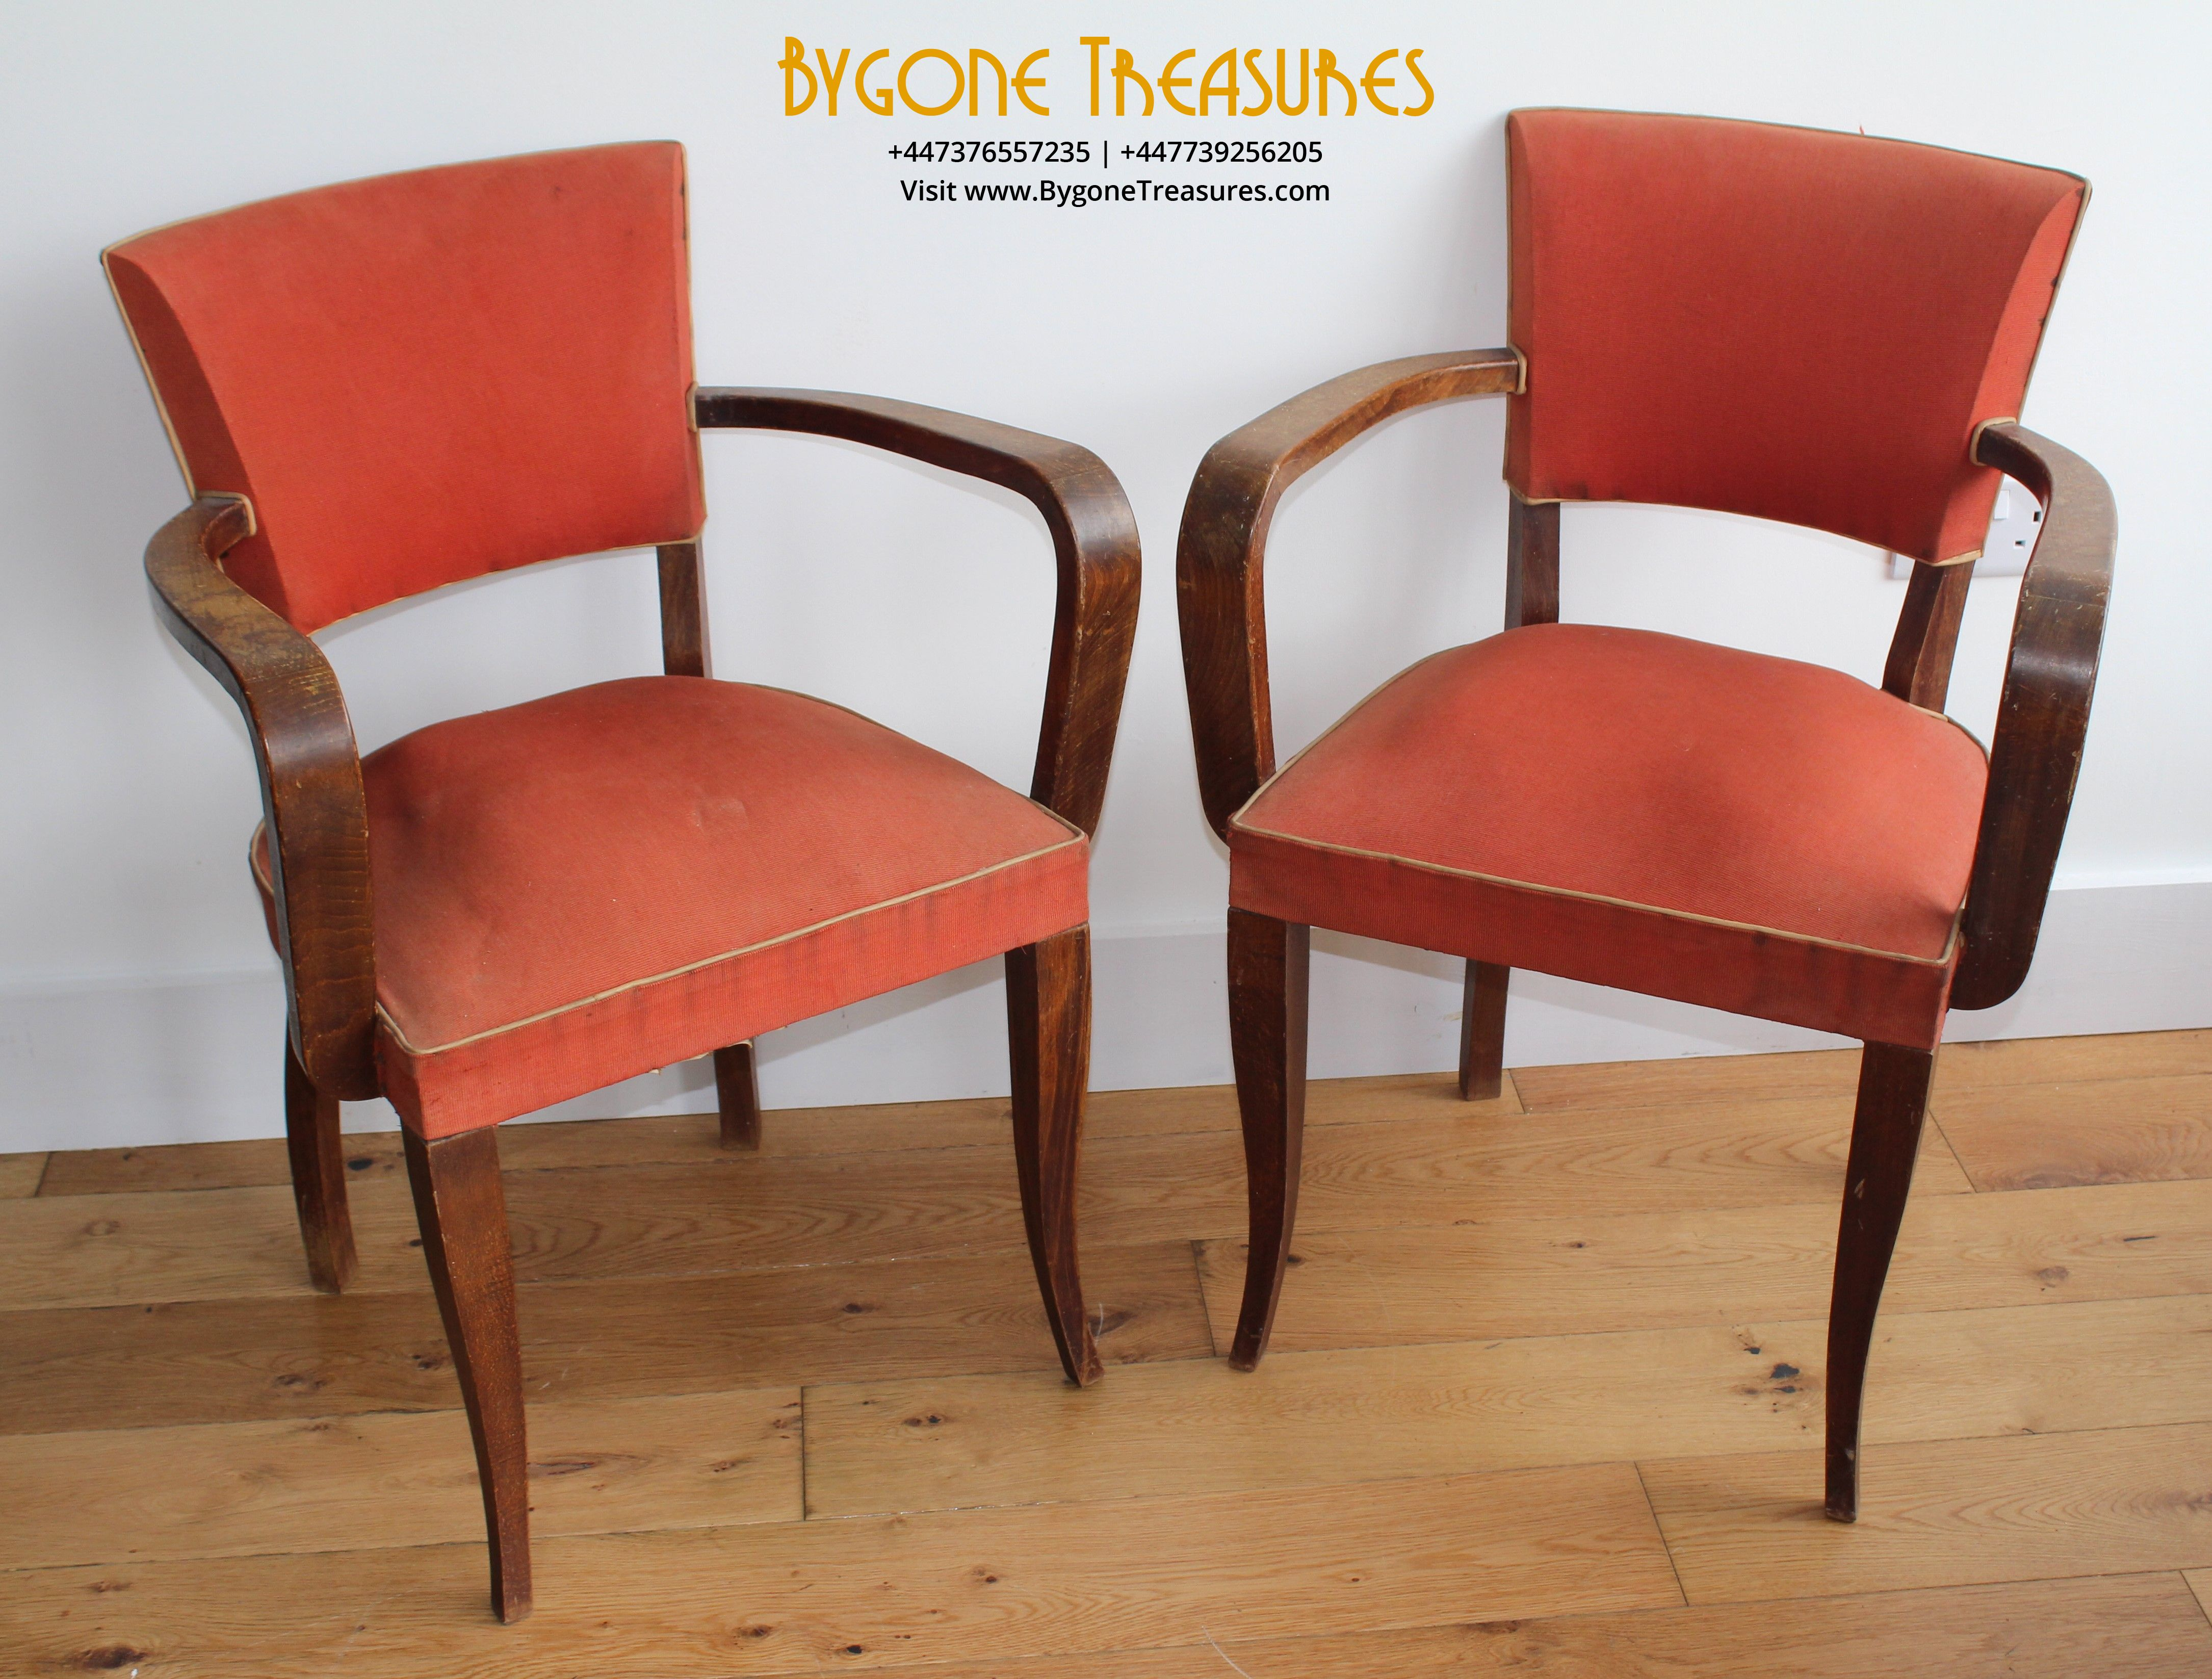 A complete and original pair of 1920's Bridge Chairs in original red cloth with whit (9)